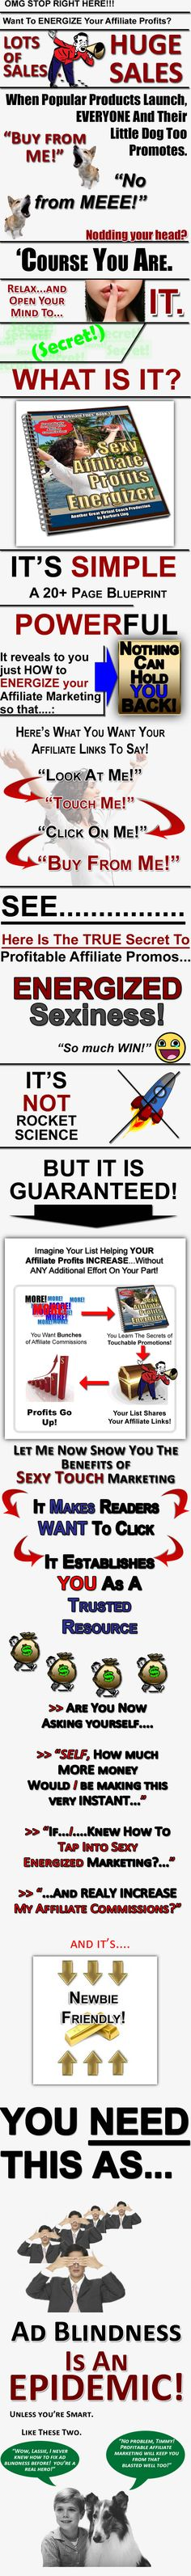 JUST RELEASED!  [HOT] BarbLing's SEXY Affiliate Profits Energizer: Earn More Commissions Than Trading Tim Tebow!